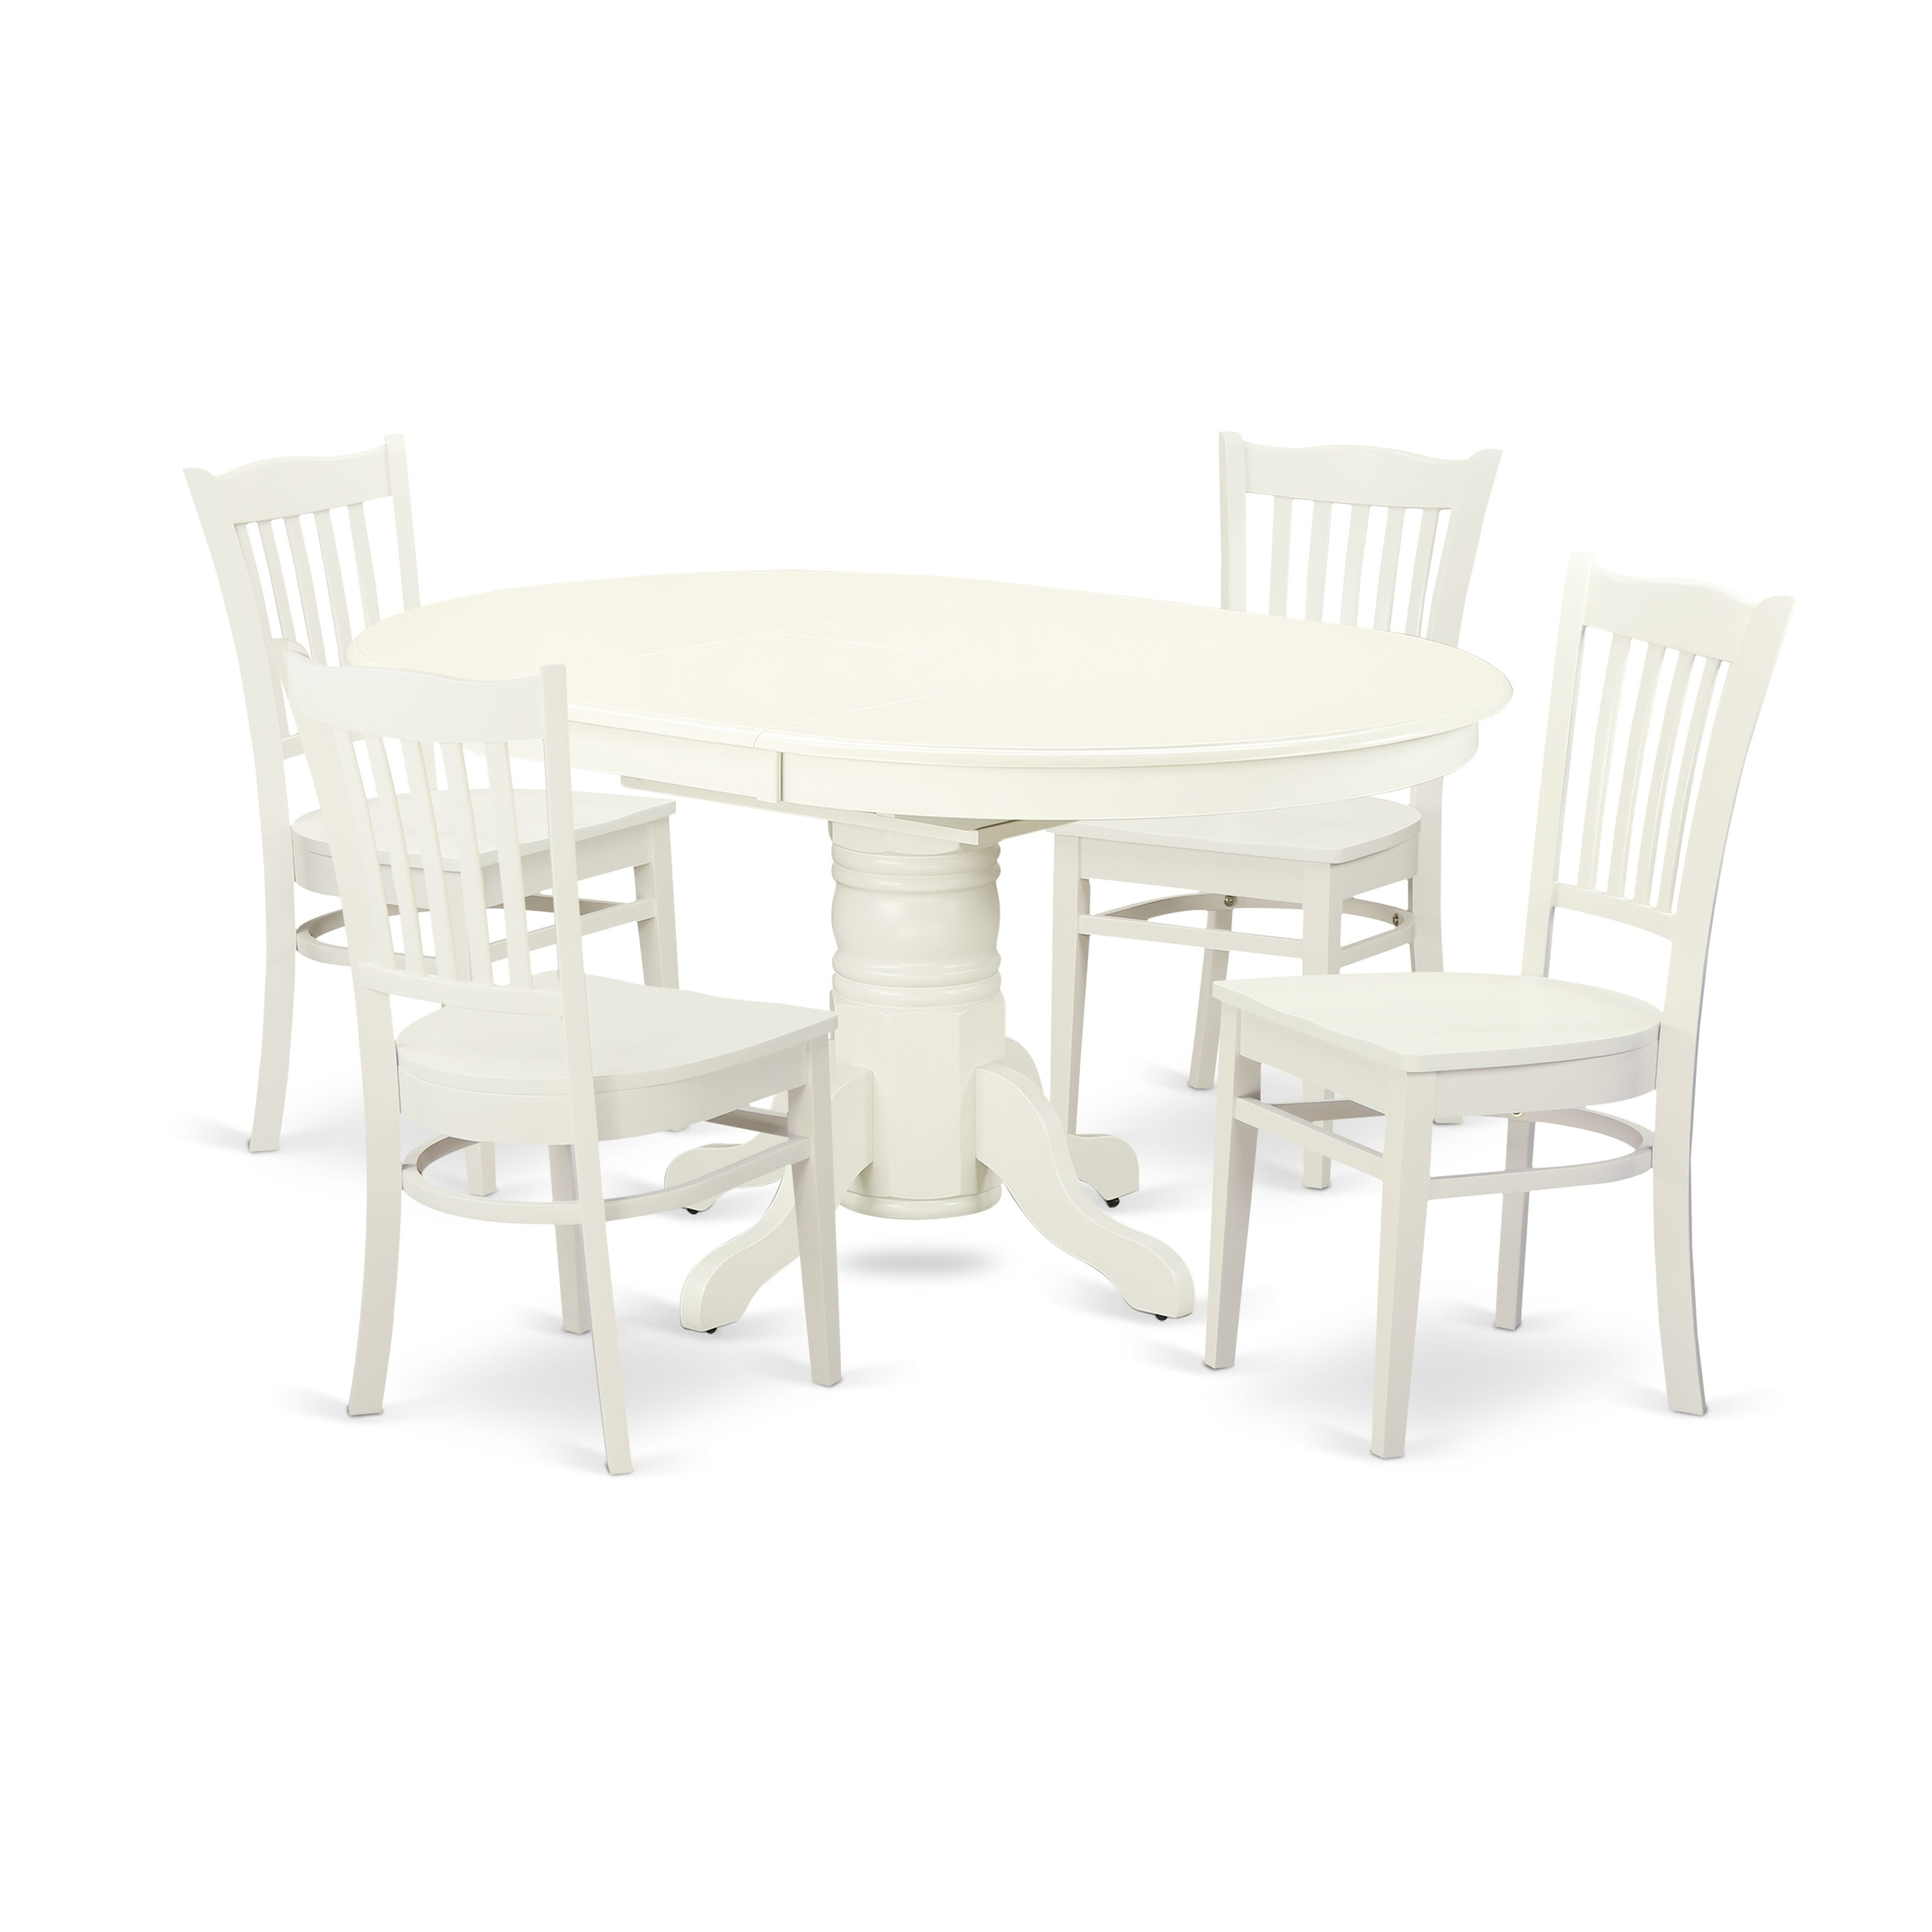 Buy 5 Piece Sets Kitchen & Dining Room Sets Online At Overstock Within Well Known West Hill Family Table 3 Piece Dining Sets (View 5 of 25)